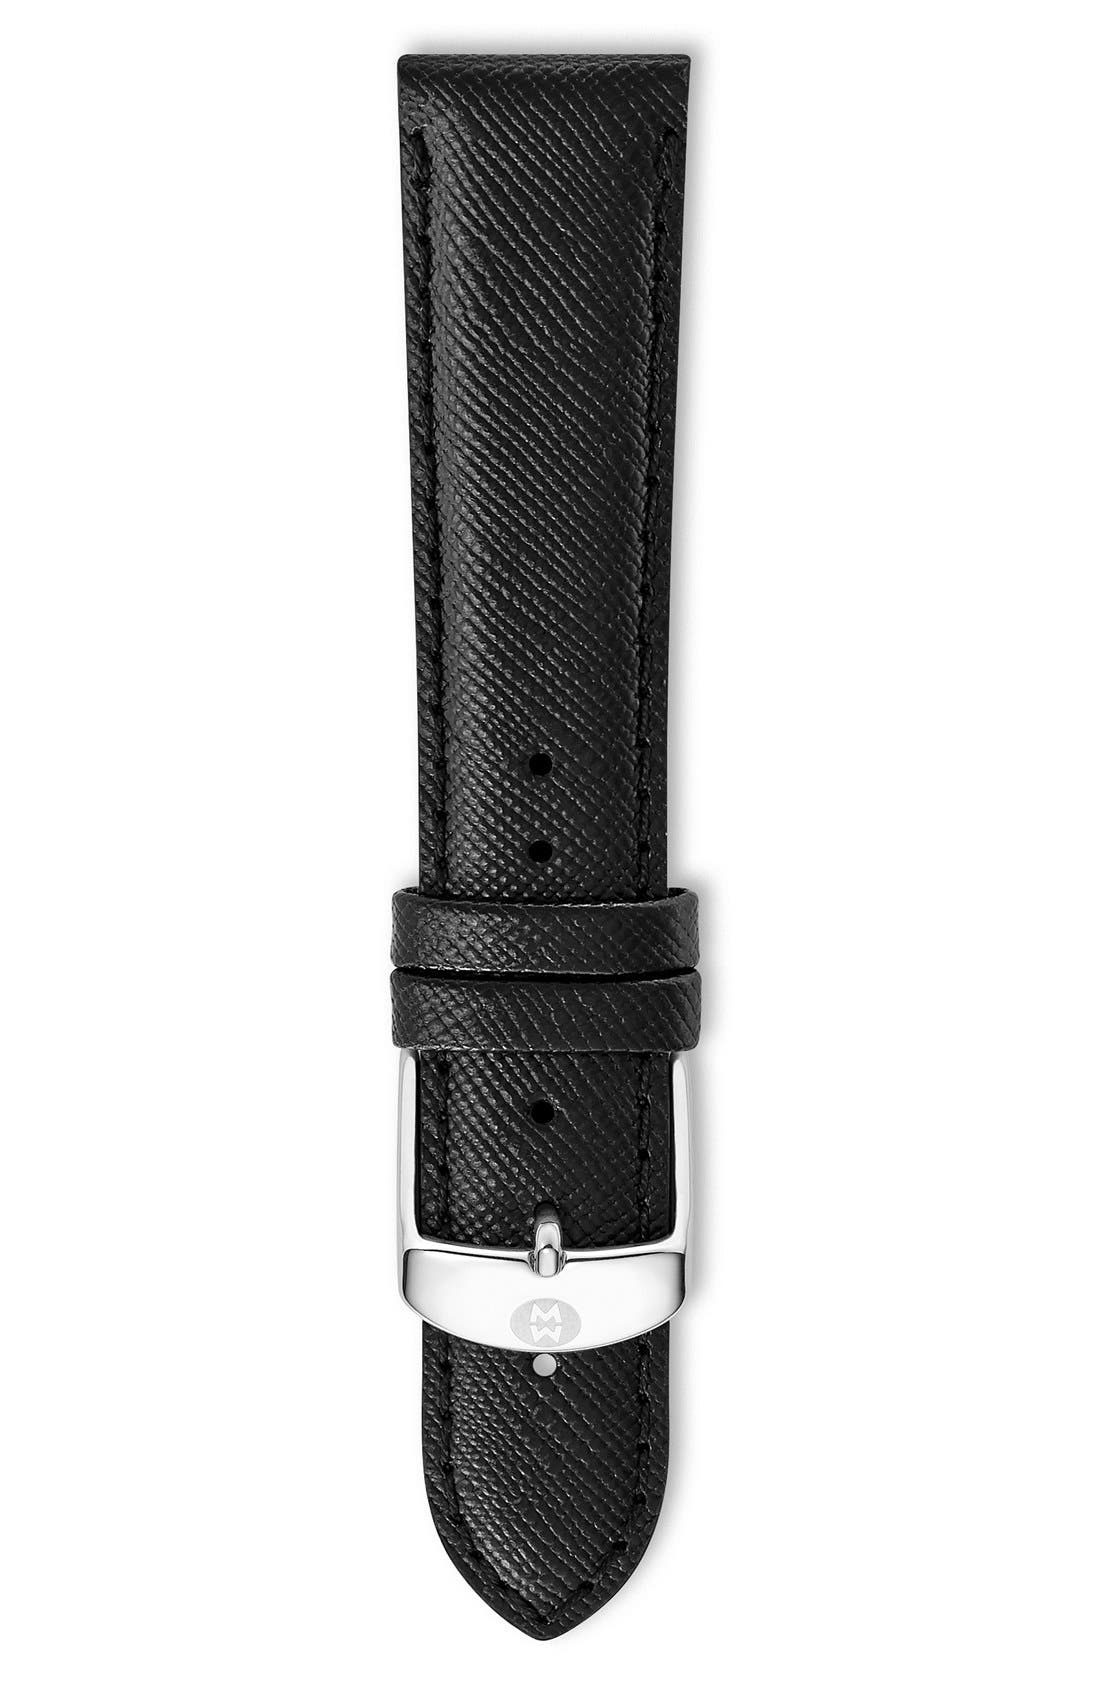 20mm Saffiano Leather Watch Strap,                             Main thumbnail 1, color,                             001